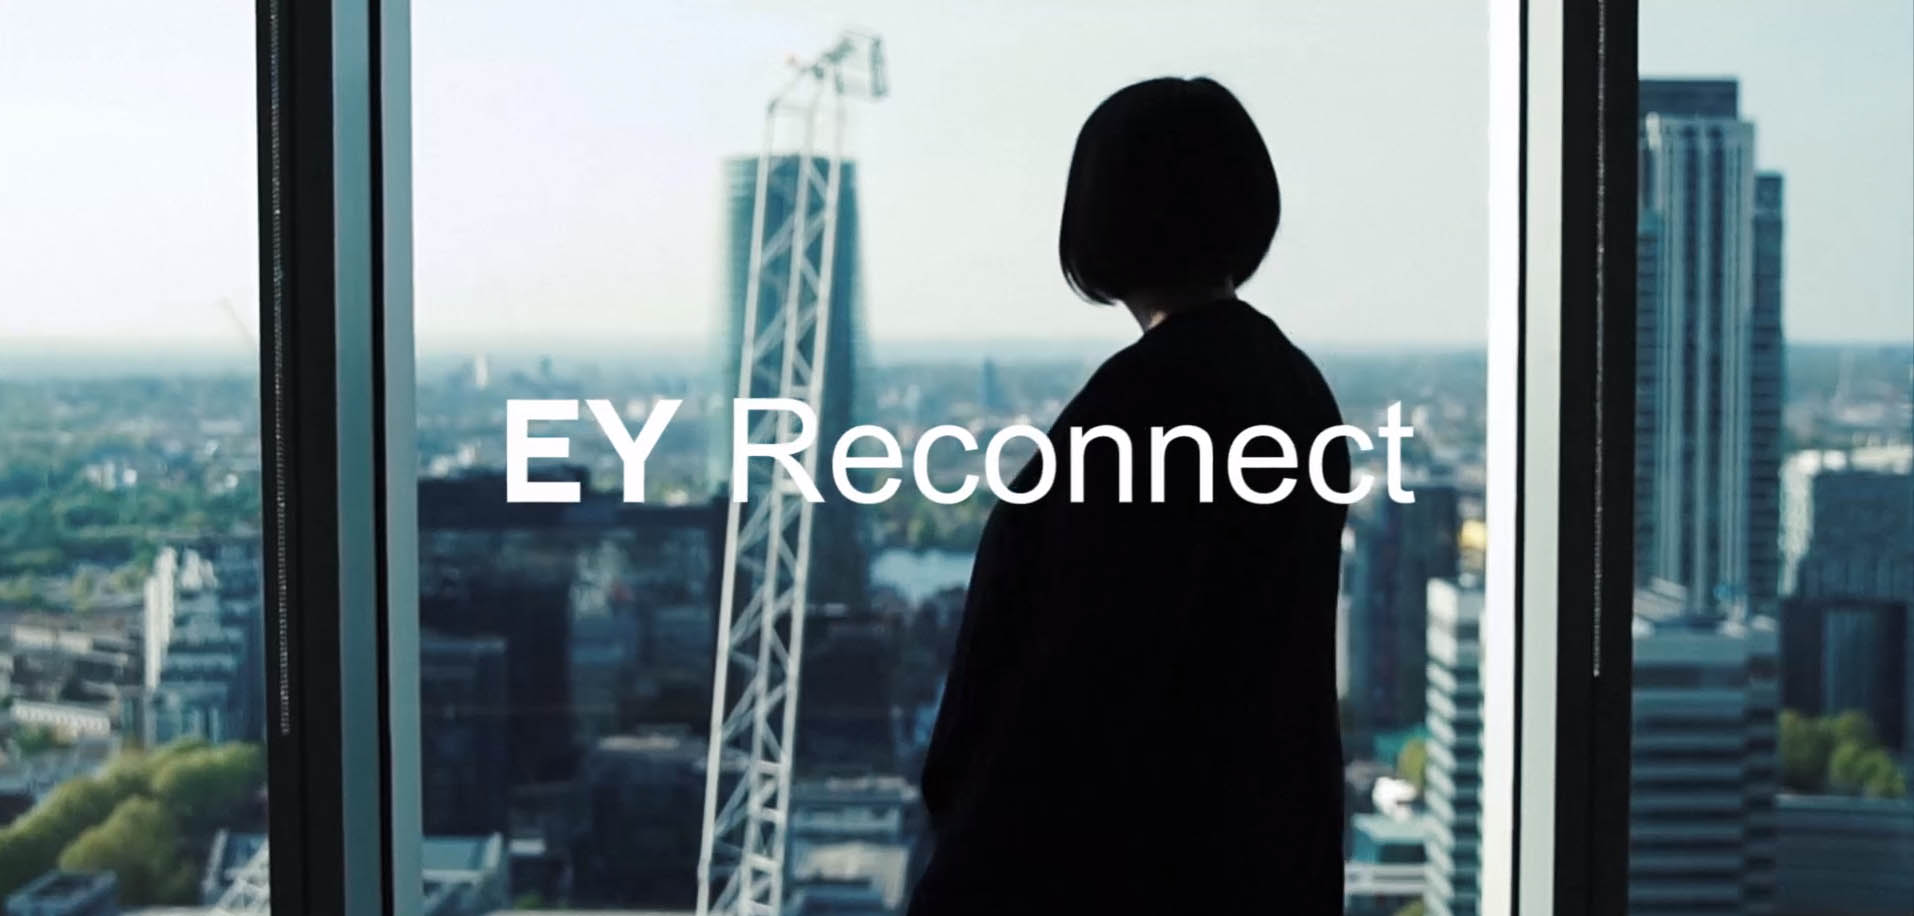 EYs Reconnect programme supports professionals returning from career breaks